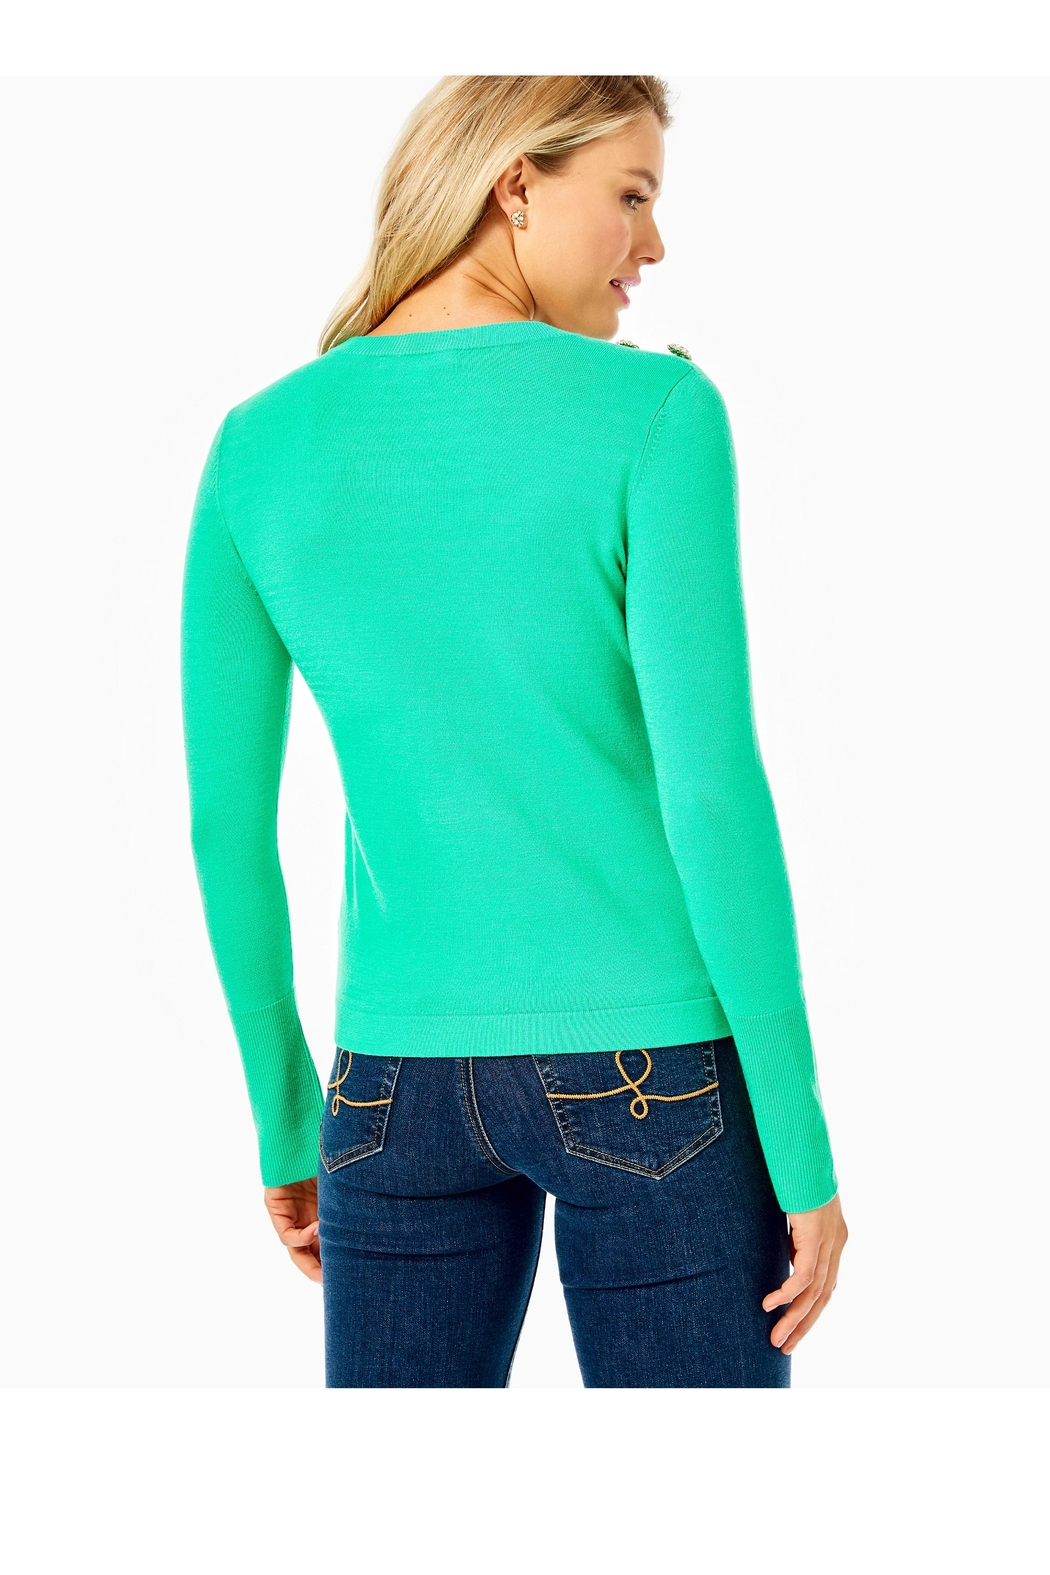 Lilly Pulitzer Morgen Sweater - Front Full Image